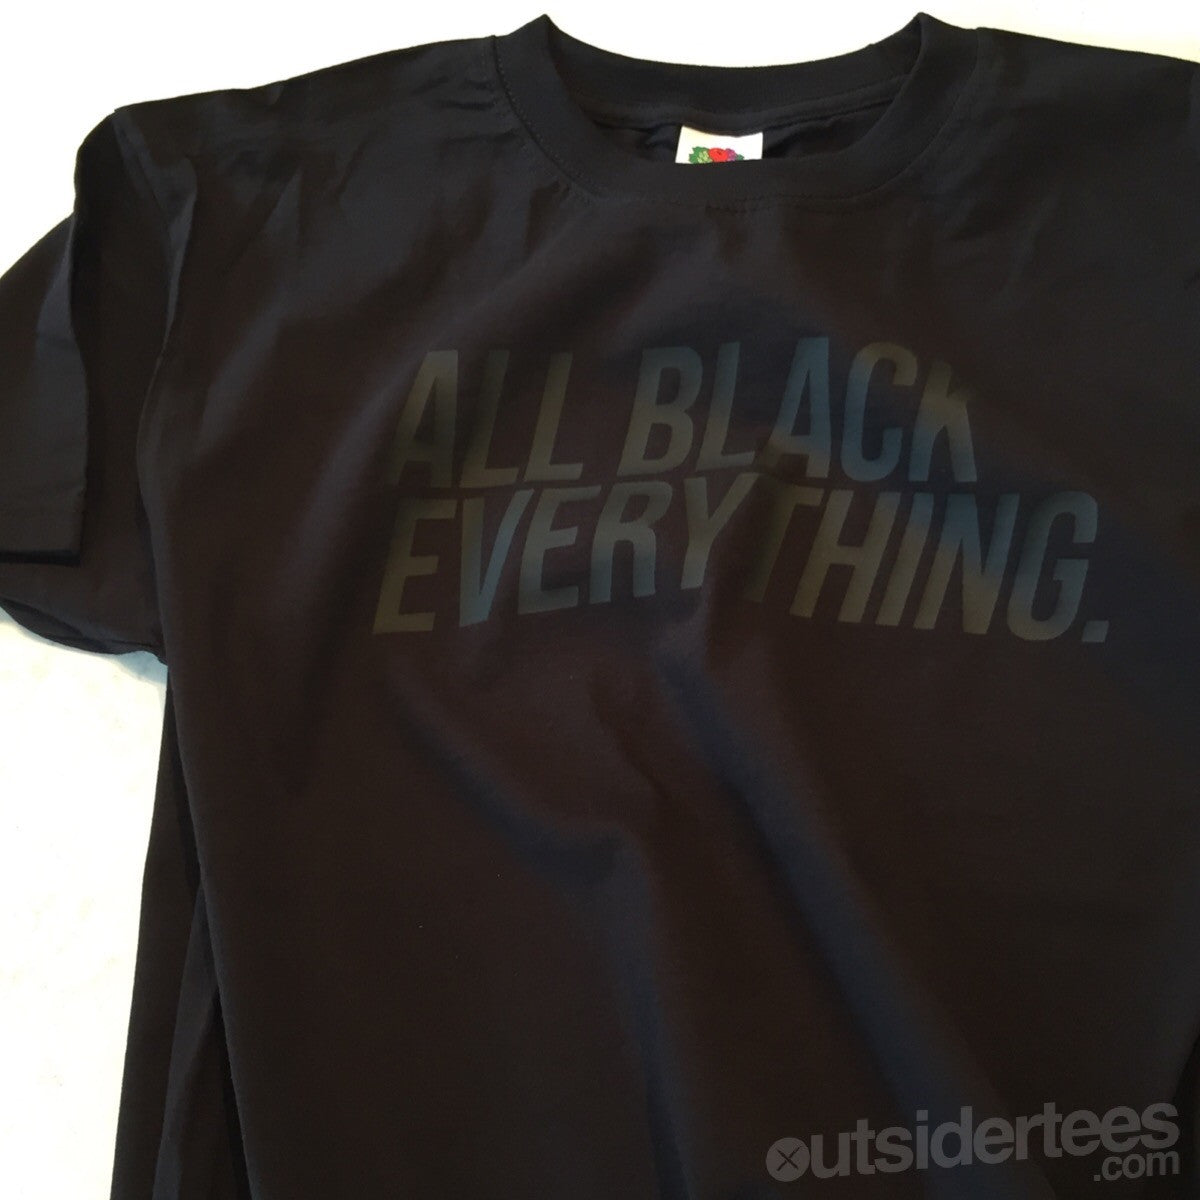 e369cde1f ALL BLACK EVERYTHING T-SHIRT - Outsider